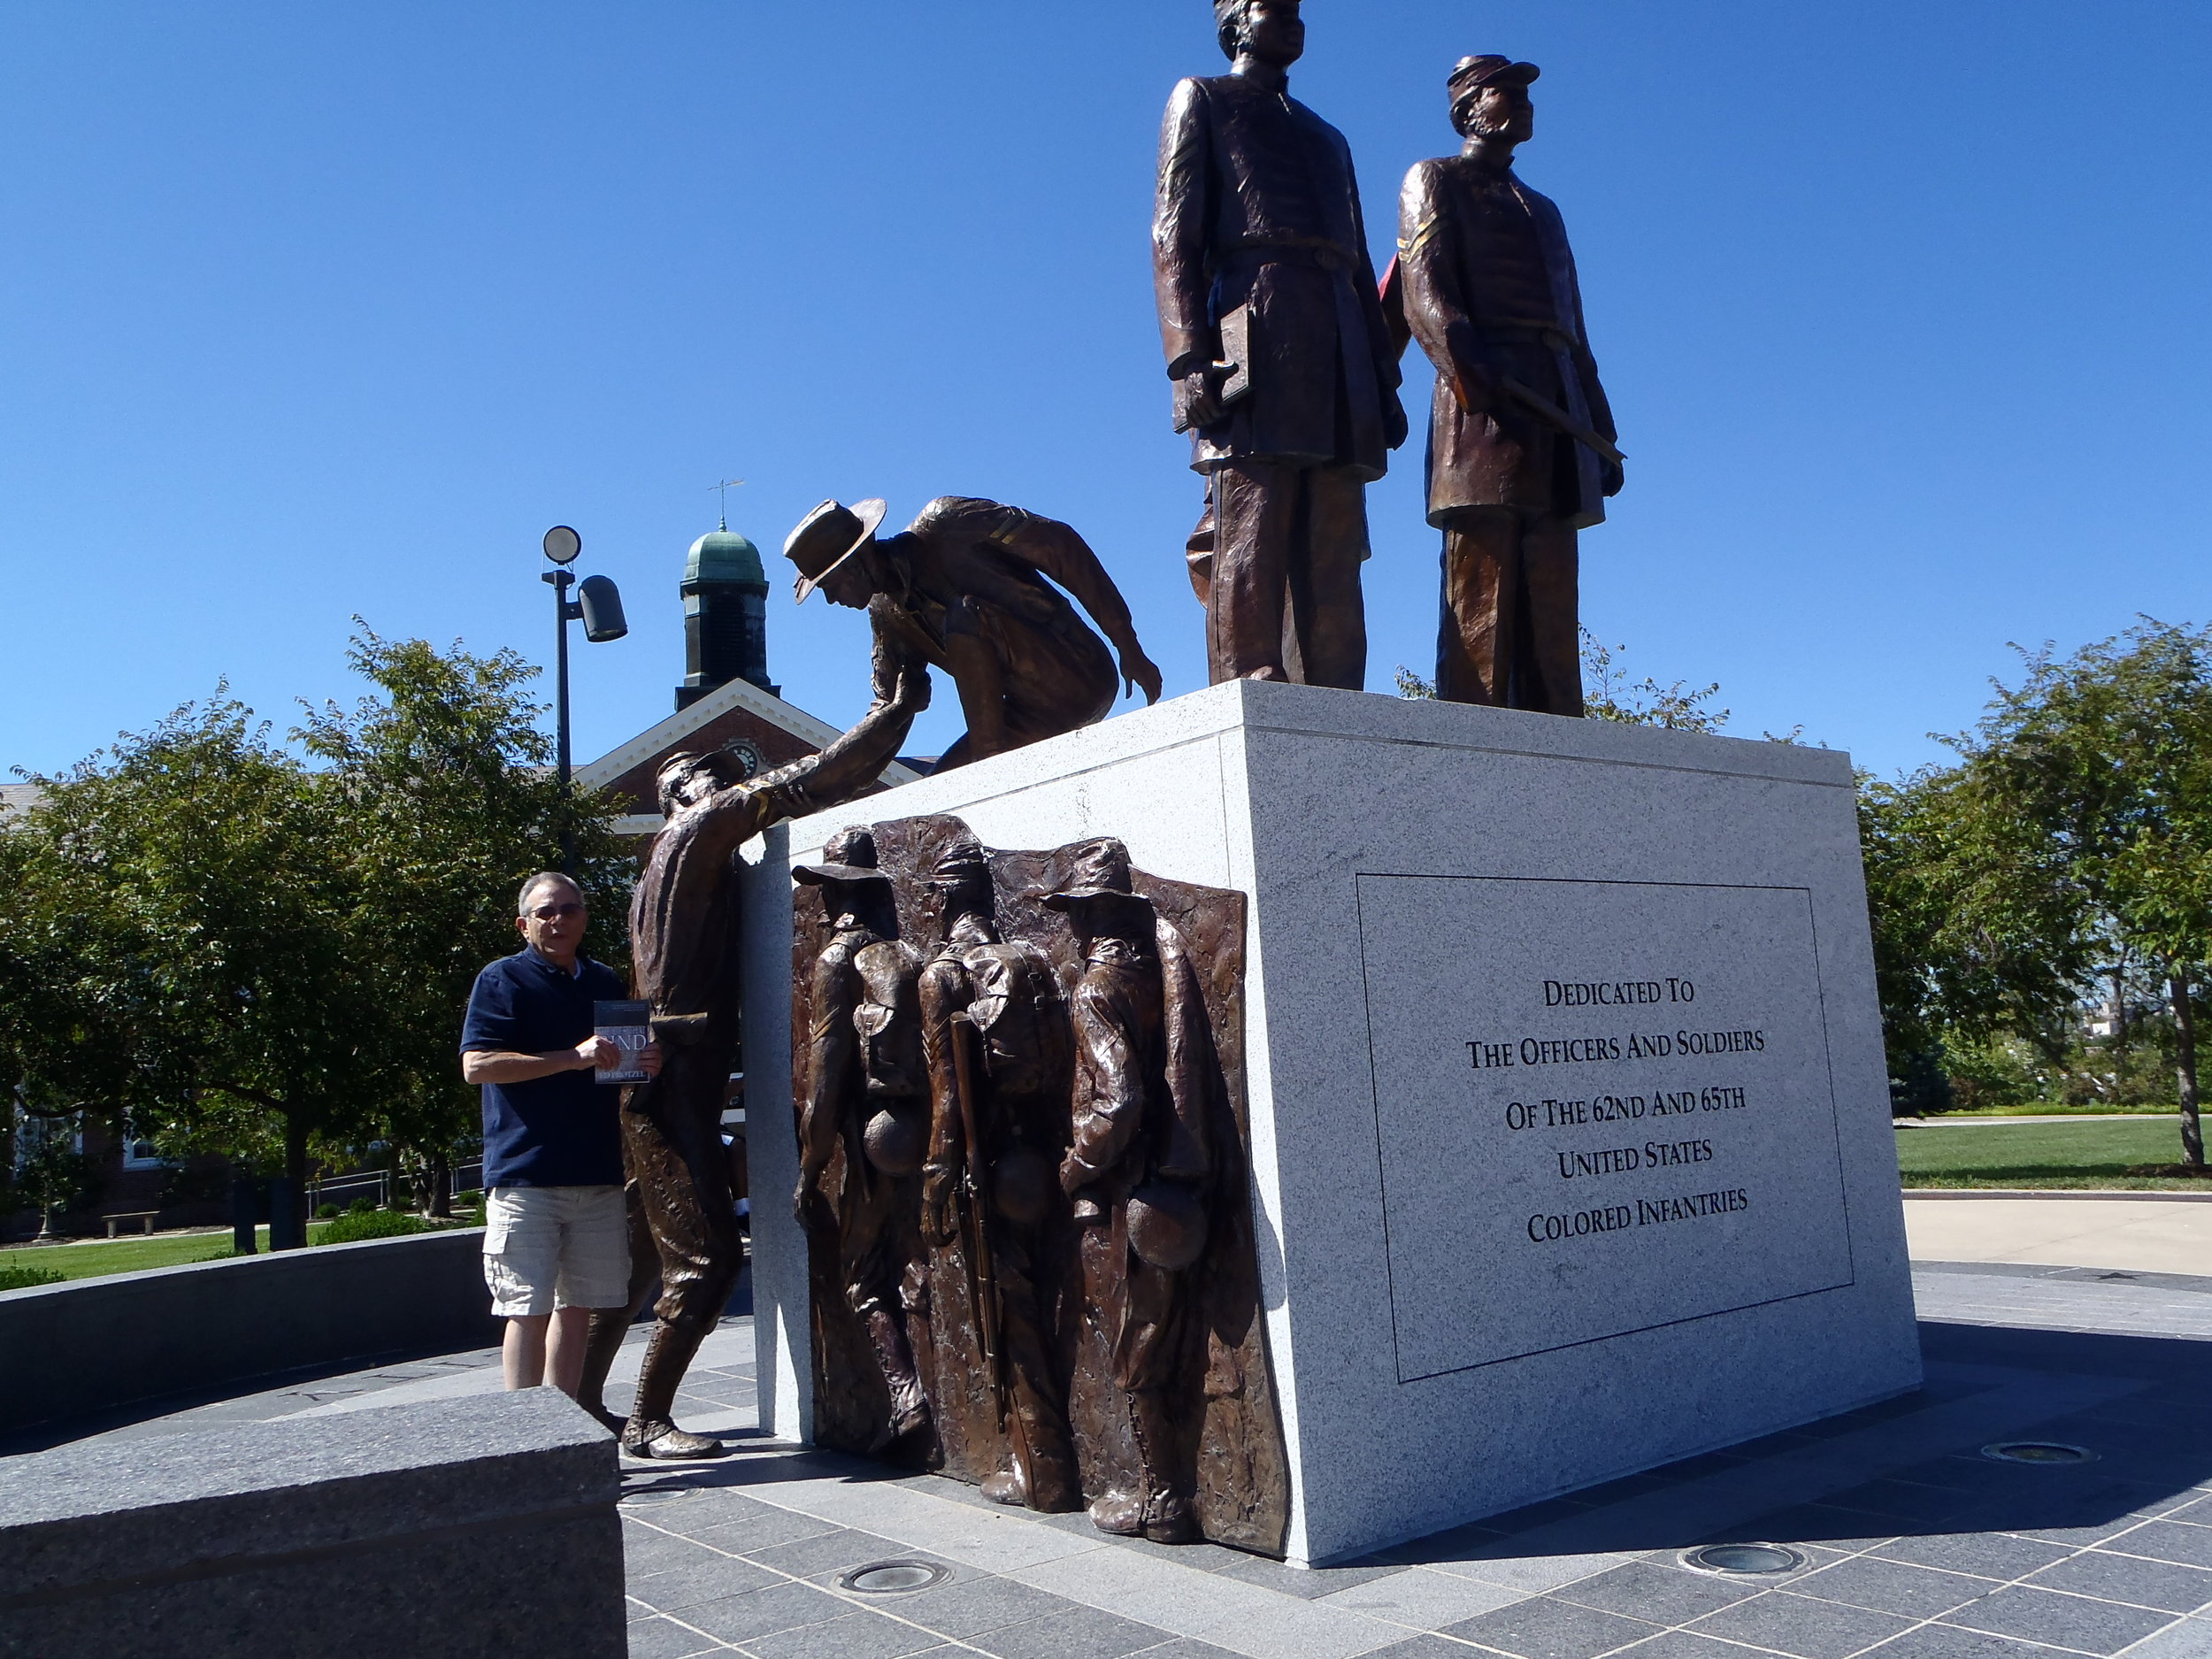 Lifting a fellow soldier up to freedom, Soldiers' Memorial, Lincoln University